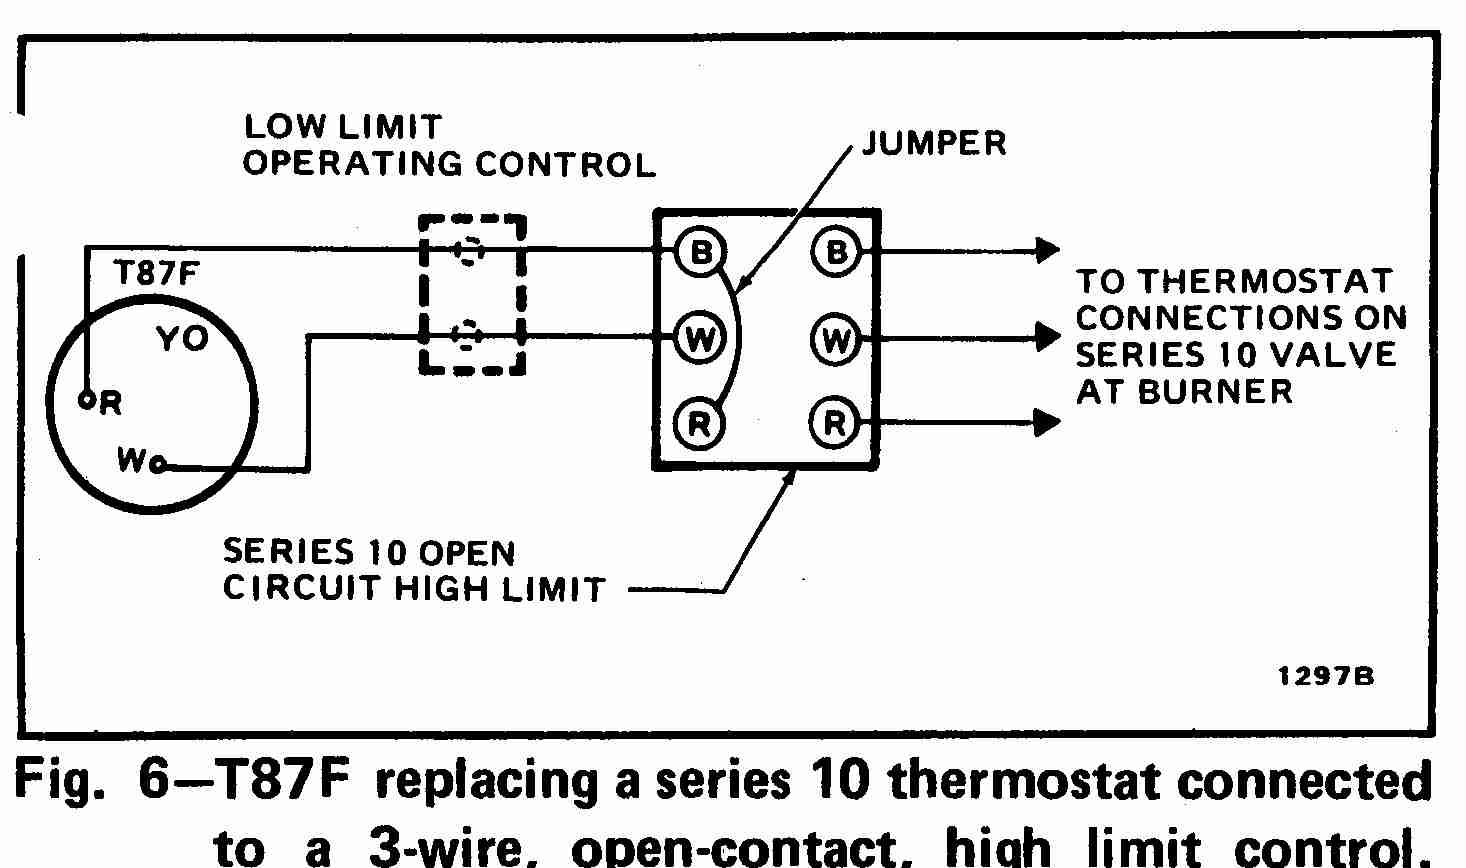 room thermostat wiring diagrams for hvac systems T87F Honeywell 2Wire Diagram honeywell thermostat t87f wiring diagram